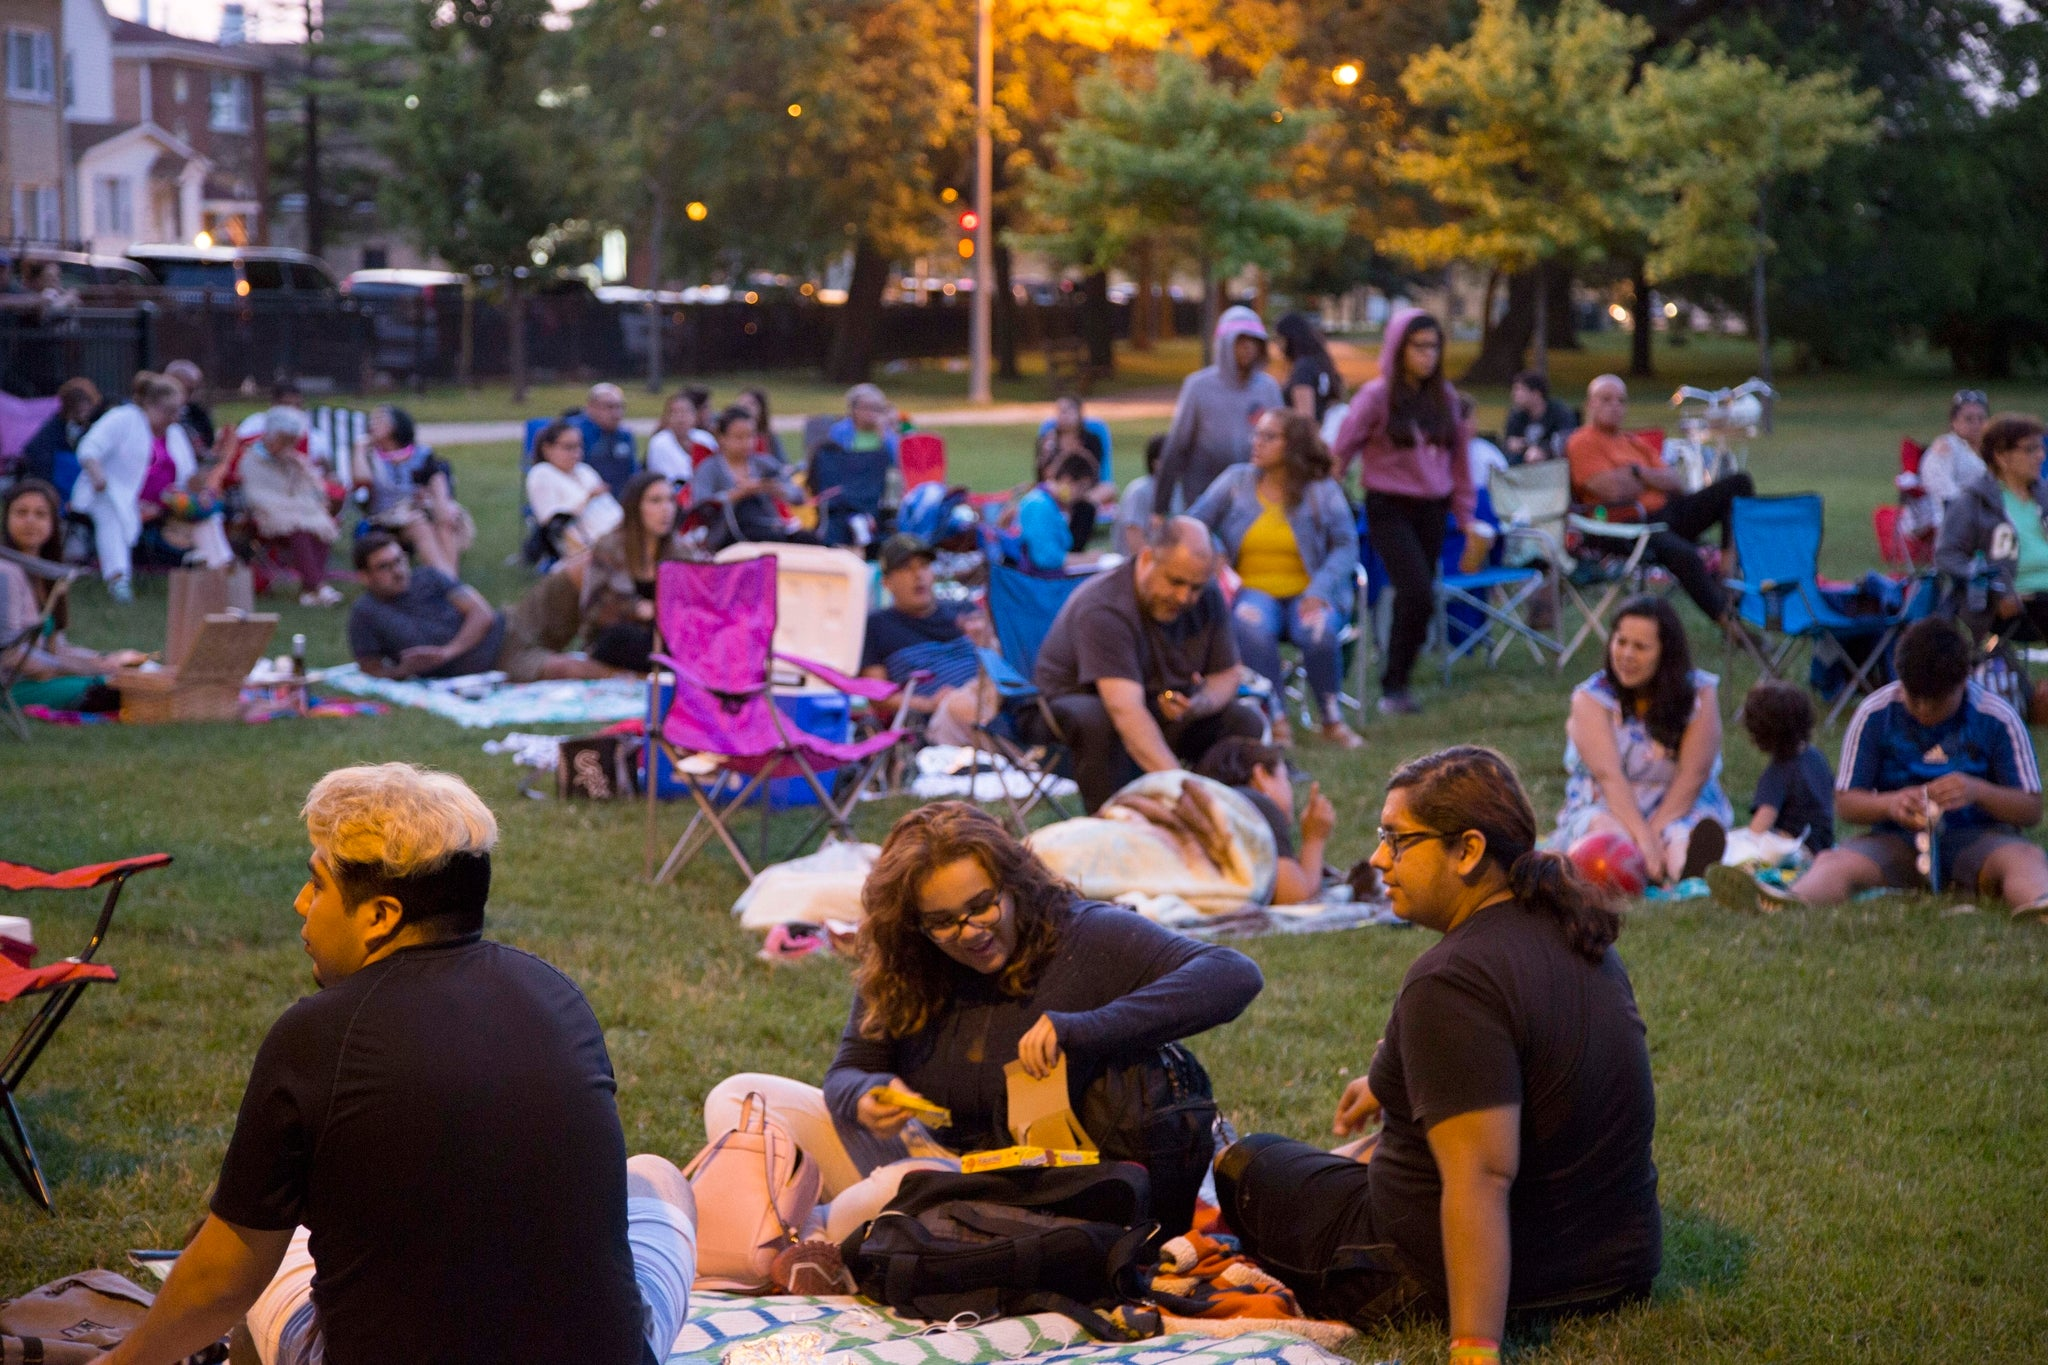 Films in the Park